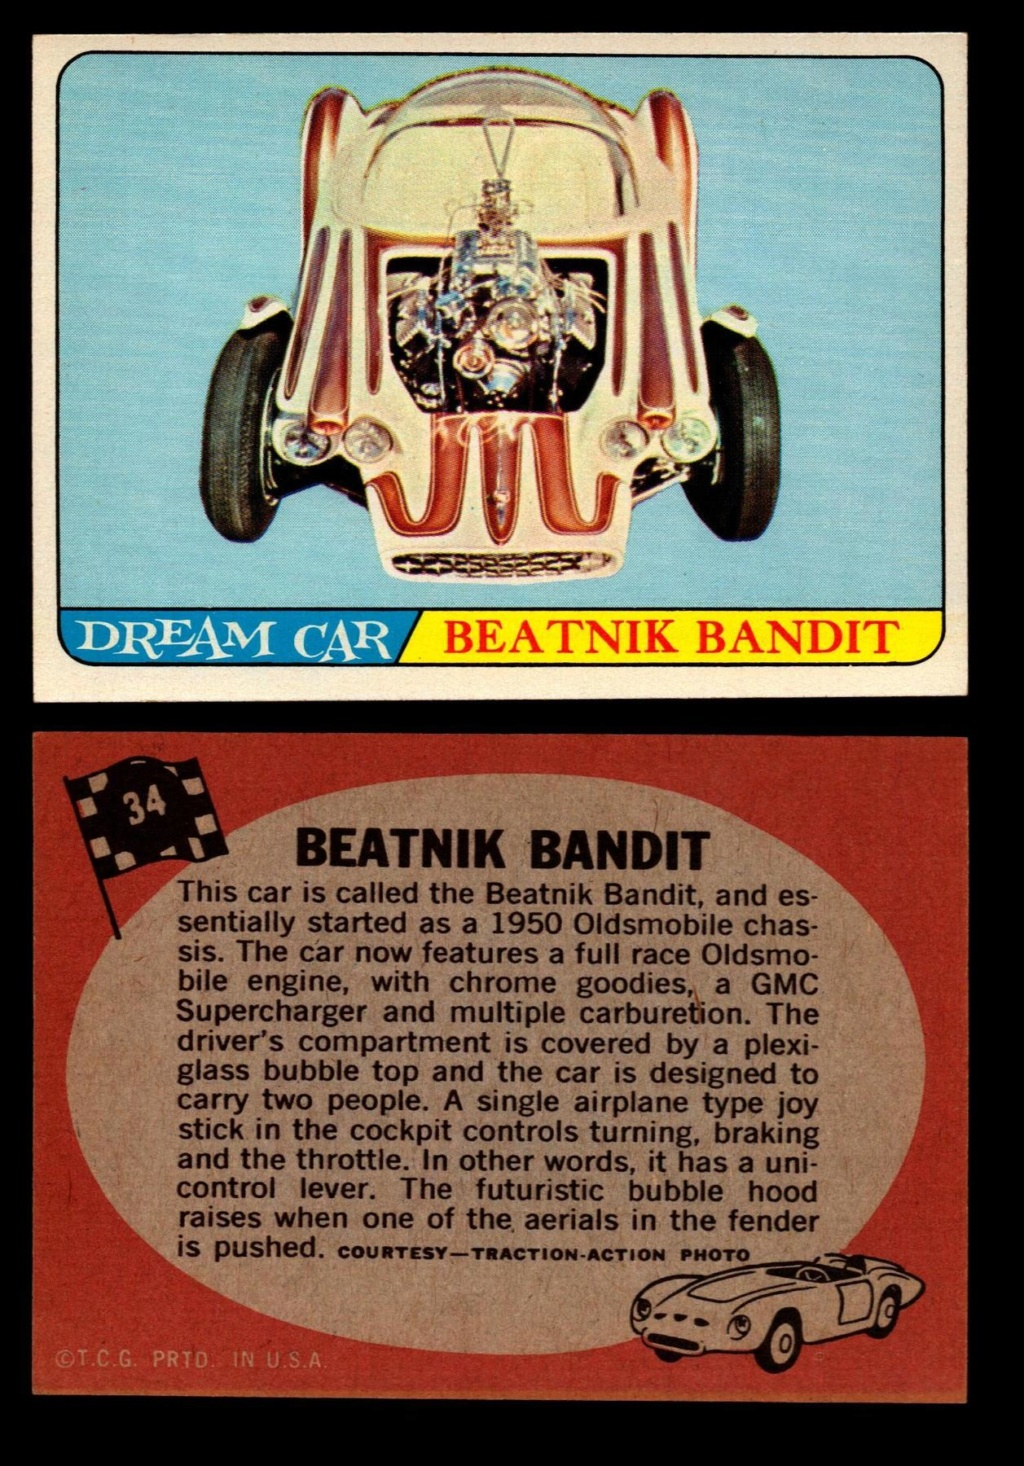 Hot Rods Topps - Vintage Trading Cards 1968 - Custom car - Dragster - Racer - Dream car - Barris Kustom City - Ed Roth Darrill Starbird, Gene Winfield, Bill Cuchenberry - Page 2 34_8fb10